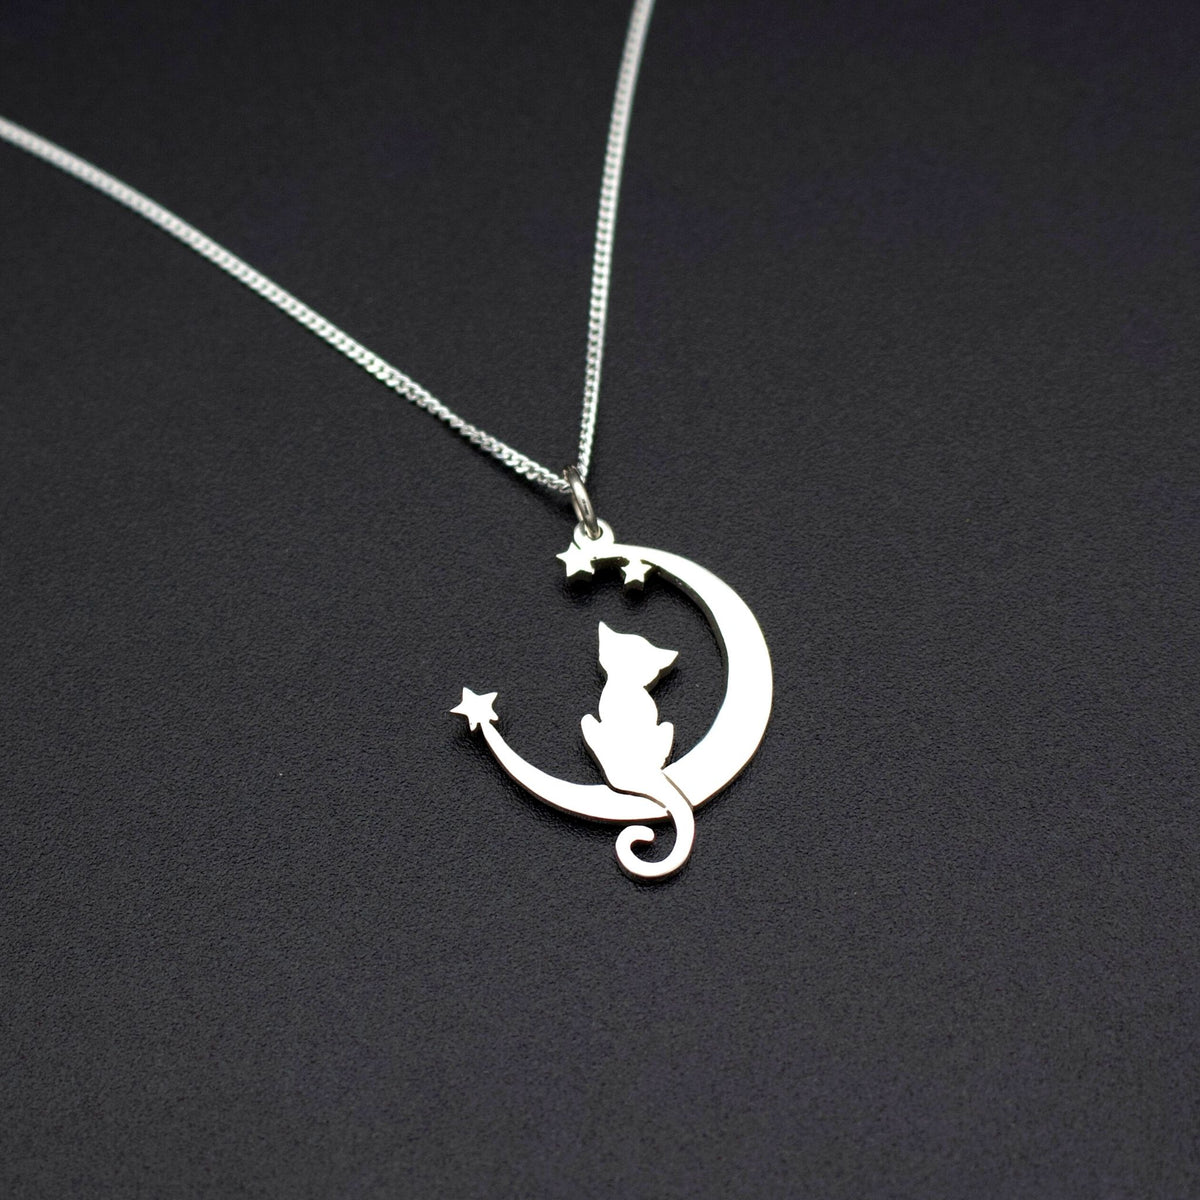 Sterling Silver Lunar Kitty Pendant with Chain